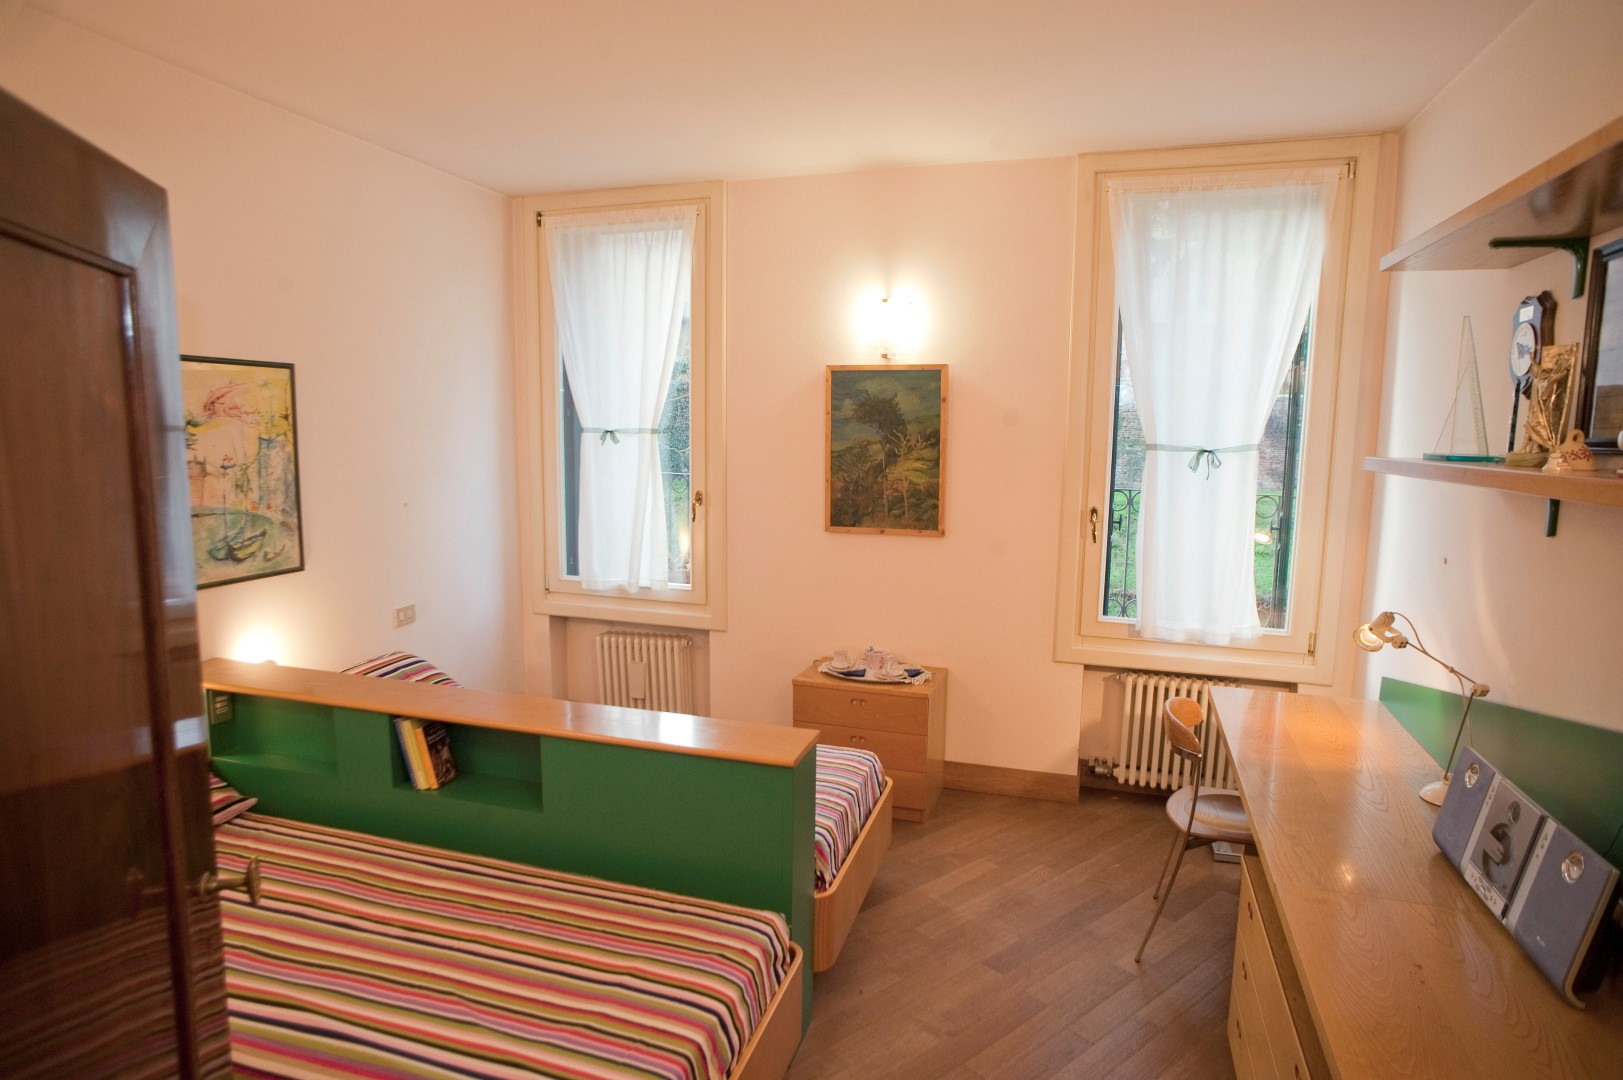 B&b al ponte Vicenza Camera doppia 1487